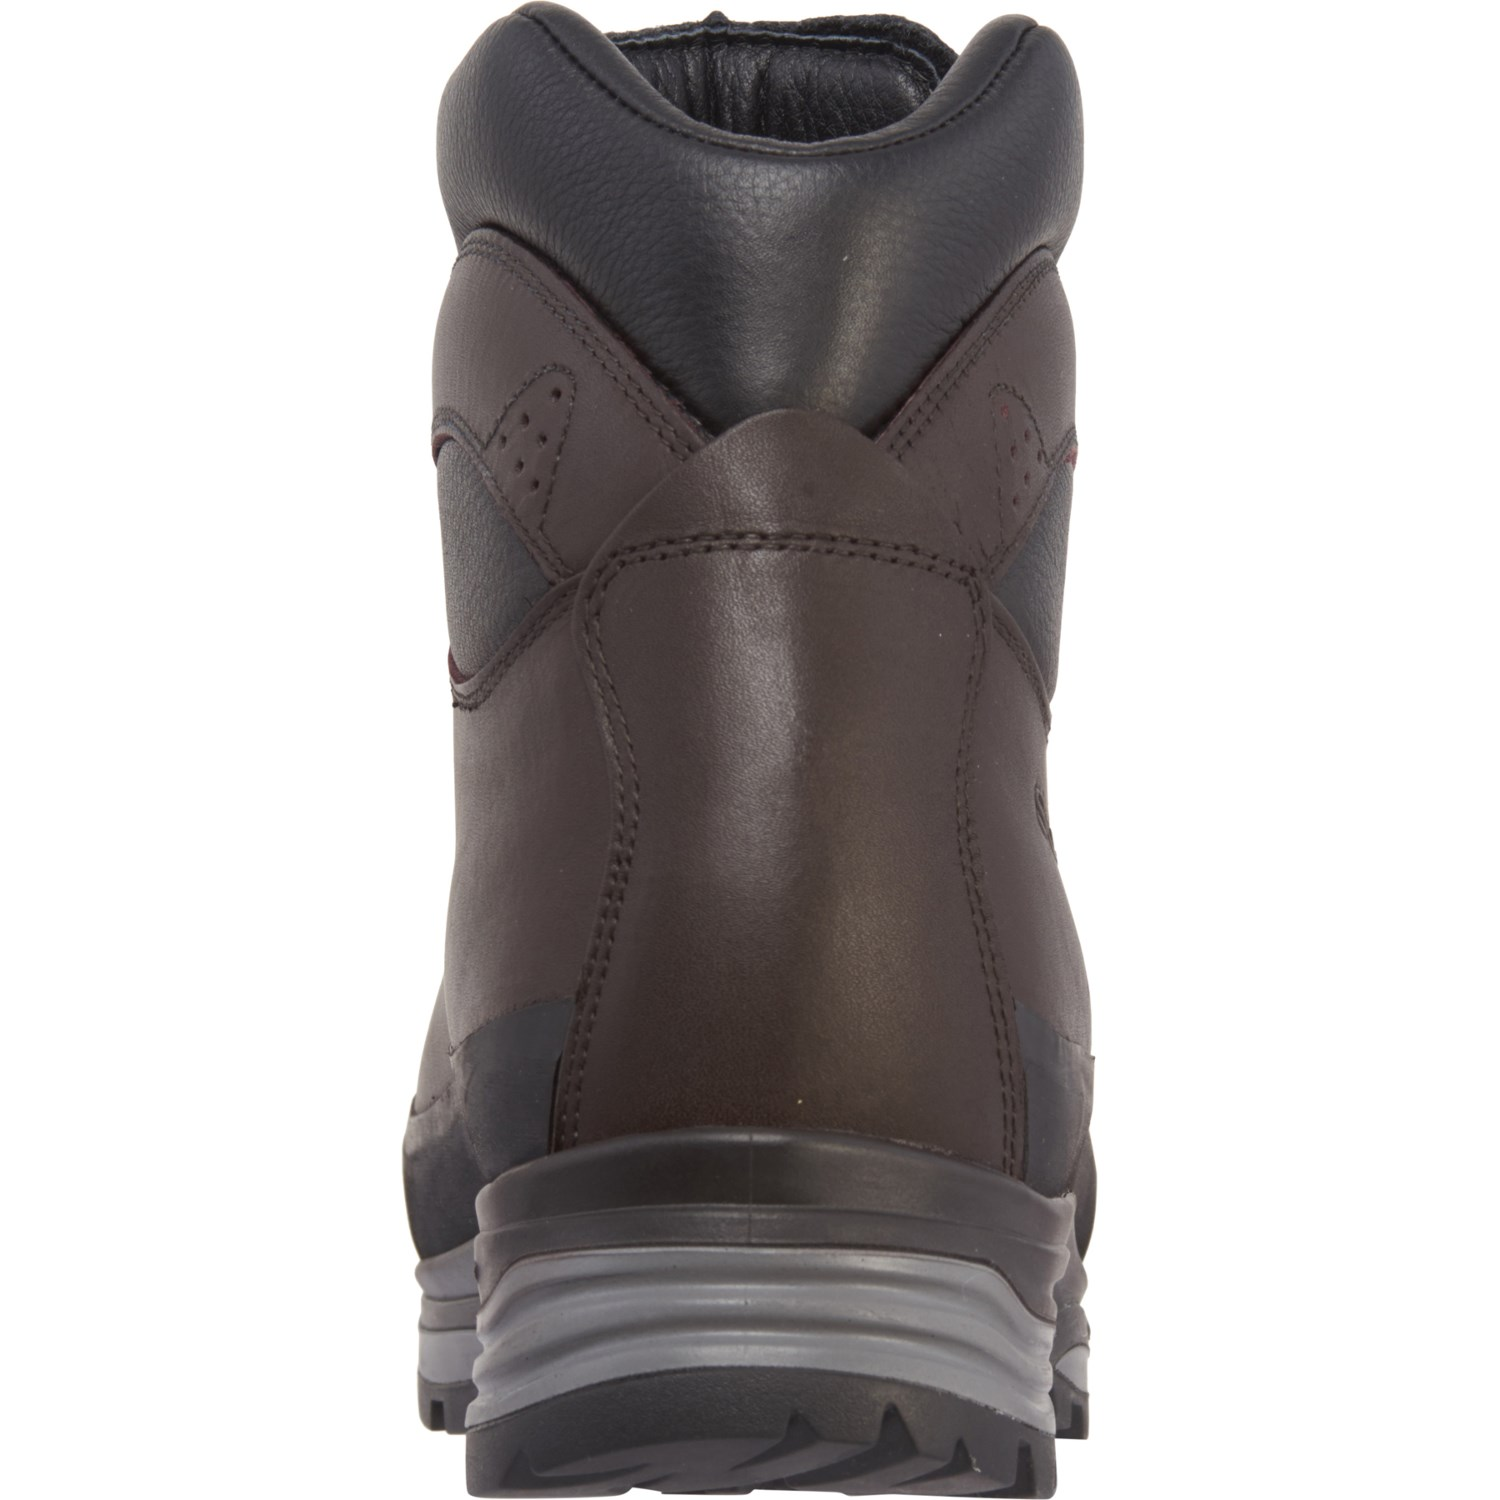 7a649c7c89f Scarpa Made in Italy SL Active Hiking Boots - Leather (For Men)